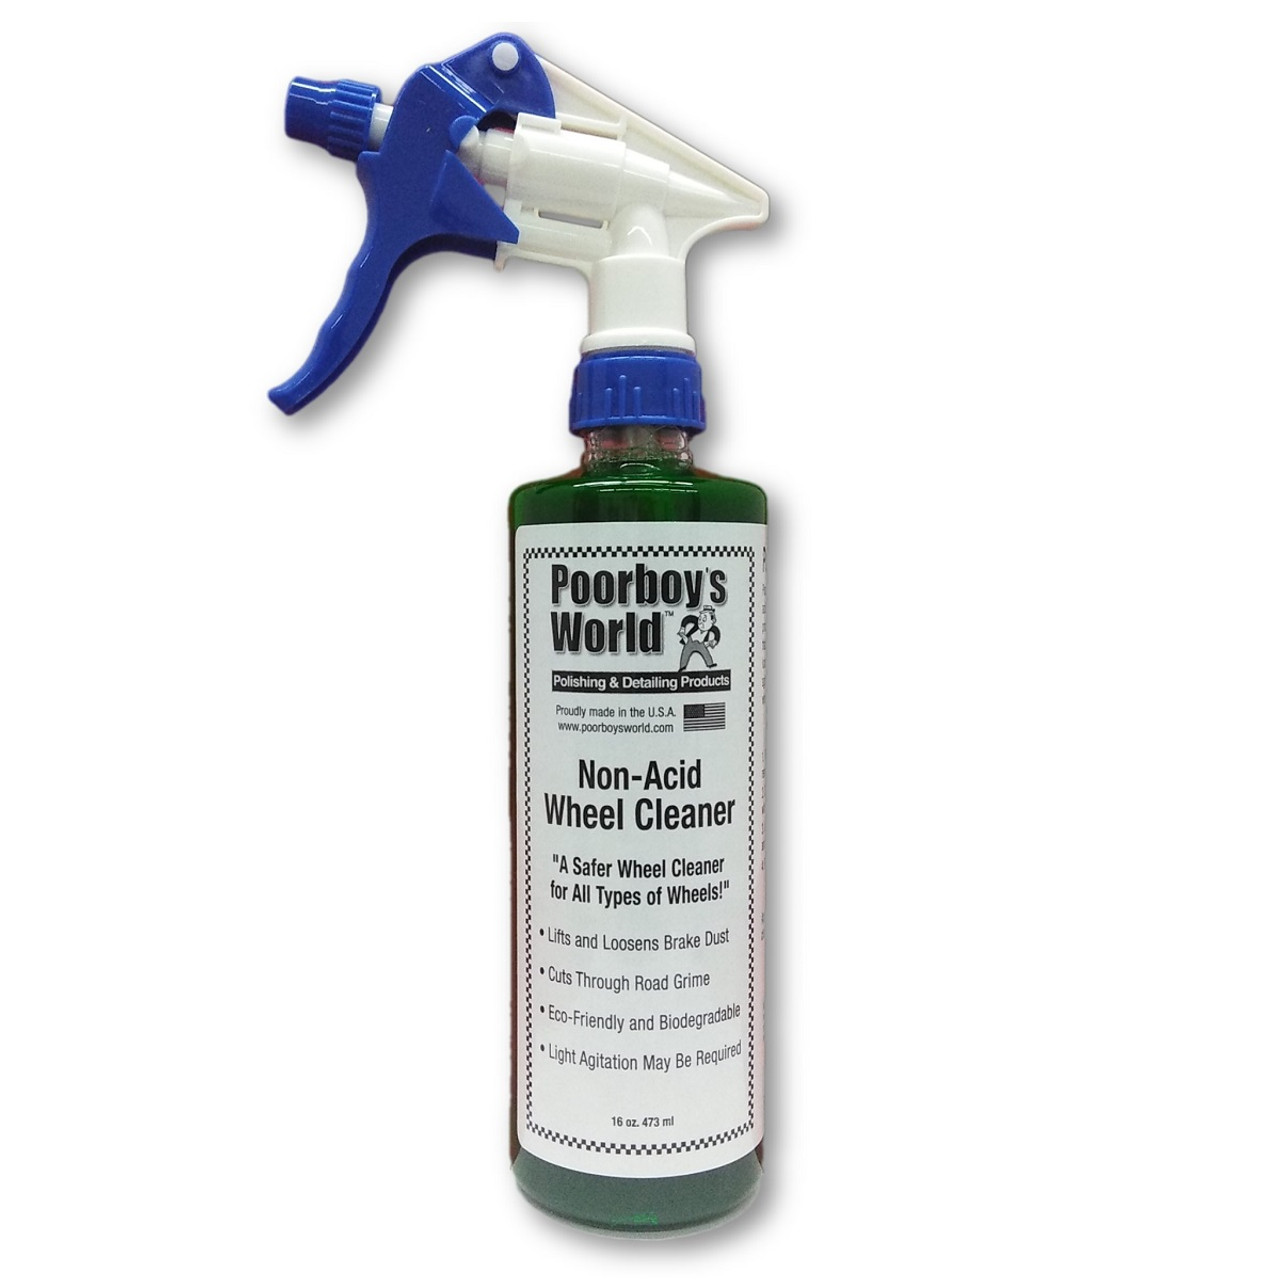 Poorboy's World Non-Acid Wheel & Tire Cleaner 16oz w/Sprayer